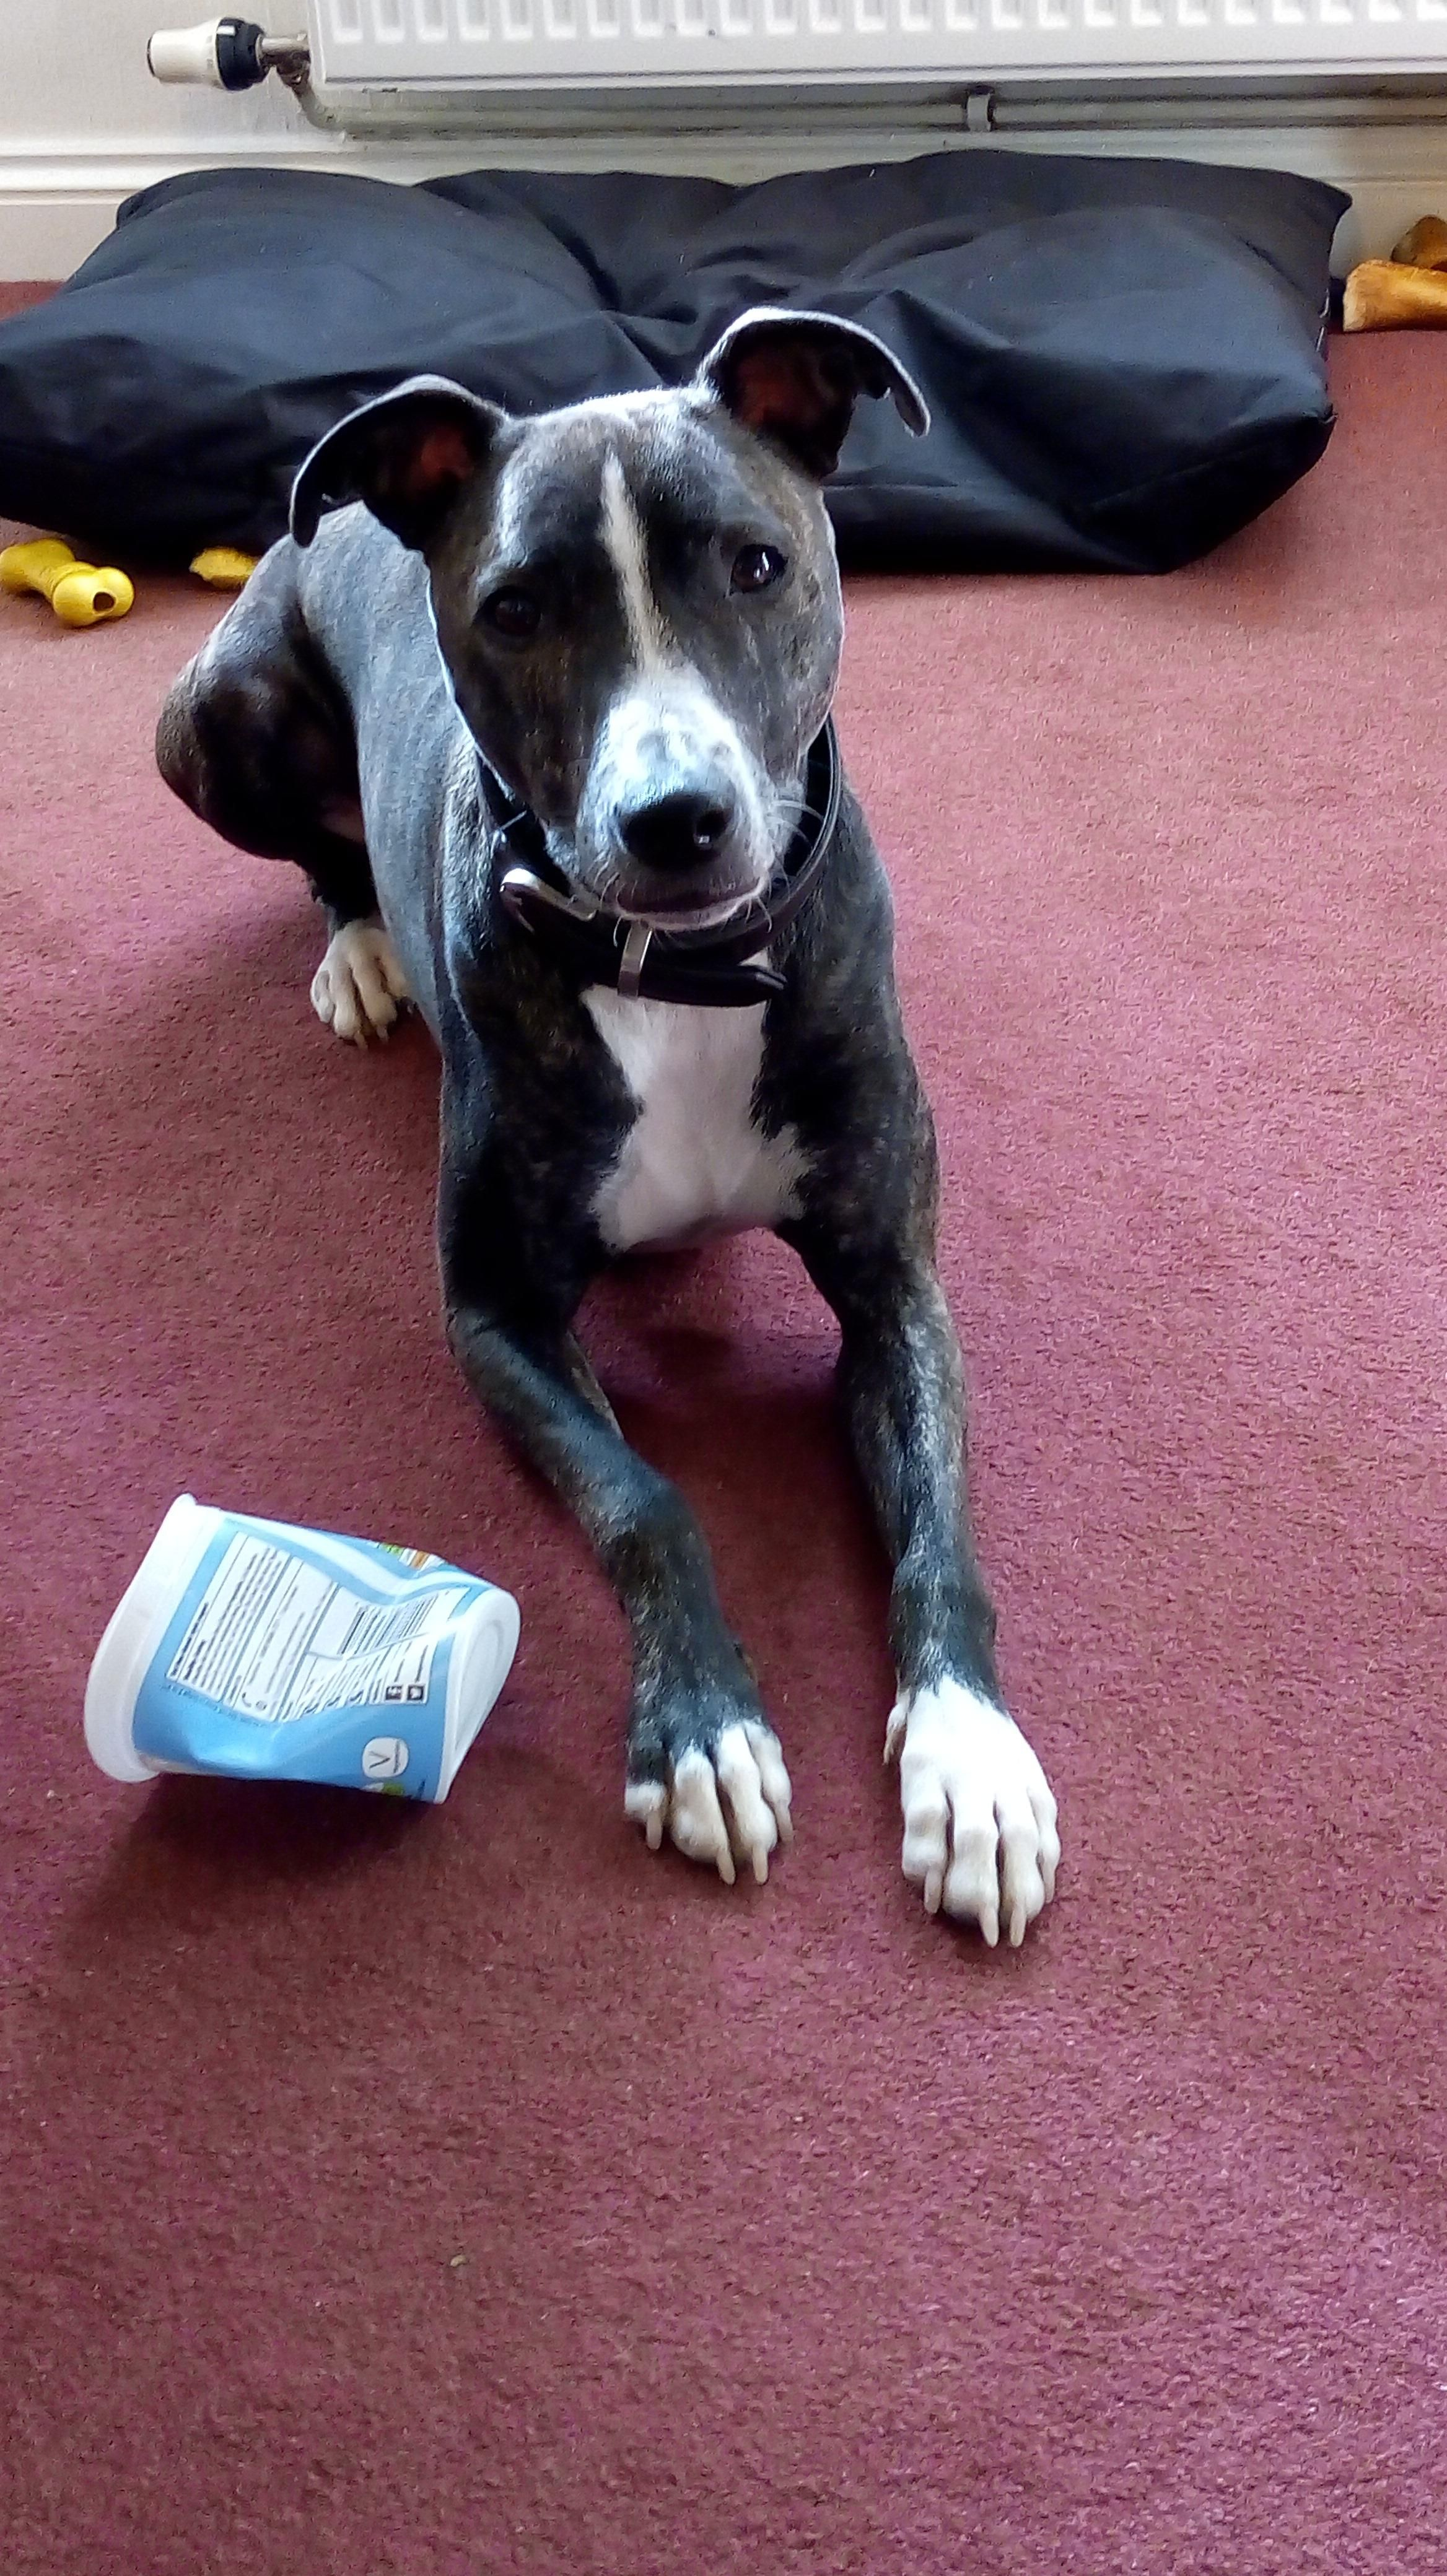 Max My Whippet X Staffy He Loves Eating Yoghurt Dogpictures